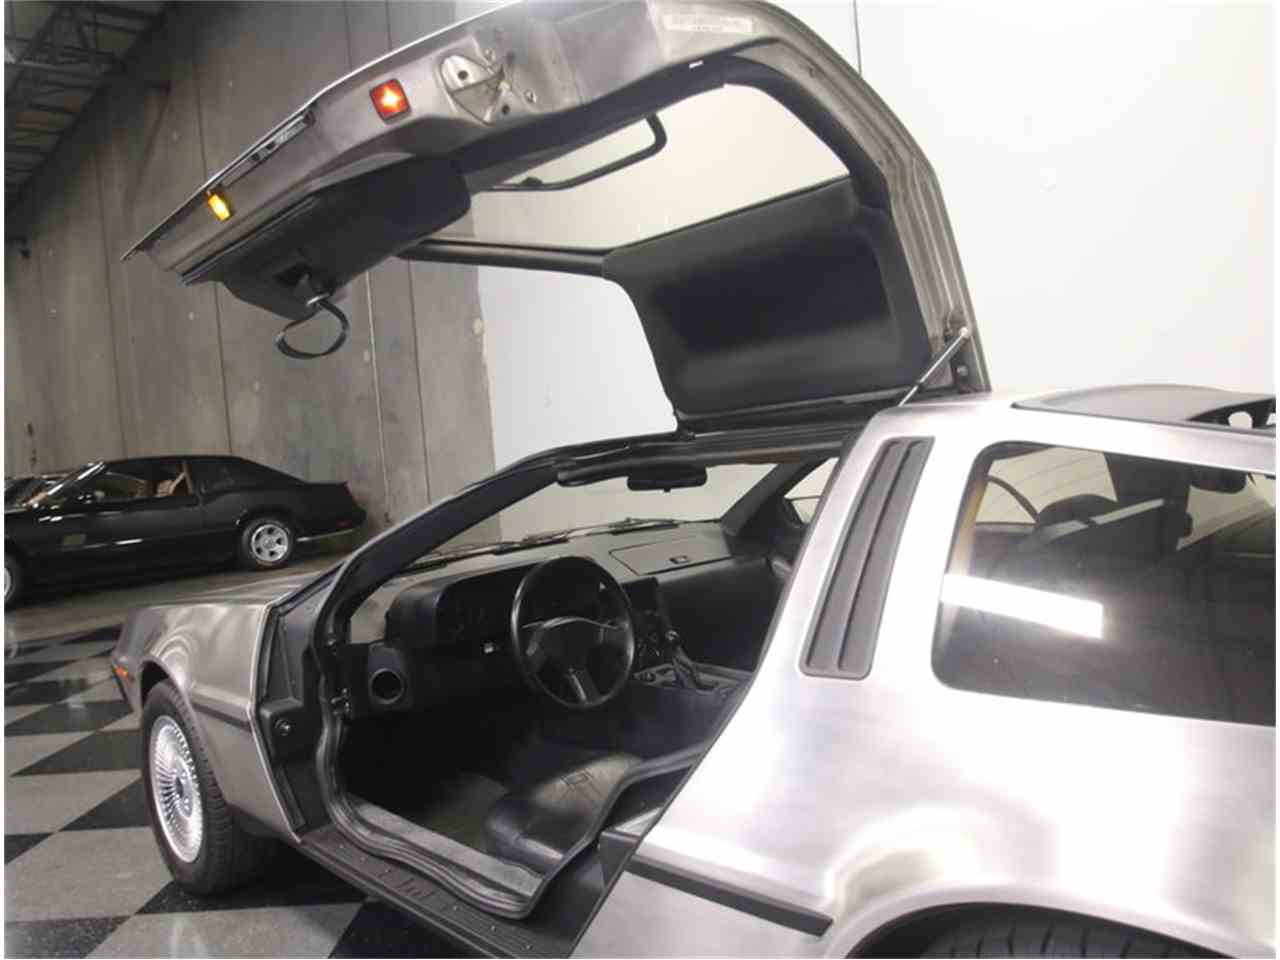 Large Picture of '81 DeLorean DMC-12 located in Lithia Springs Georgia Offered by Streetside Classics - Atlanta - MGXM